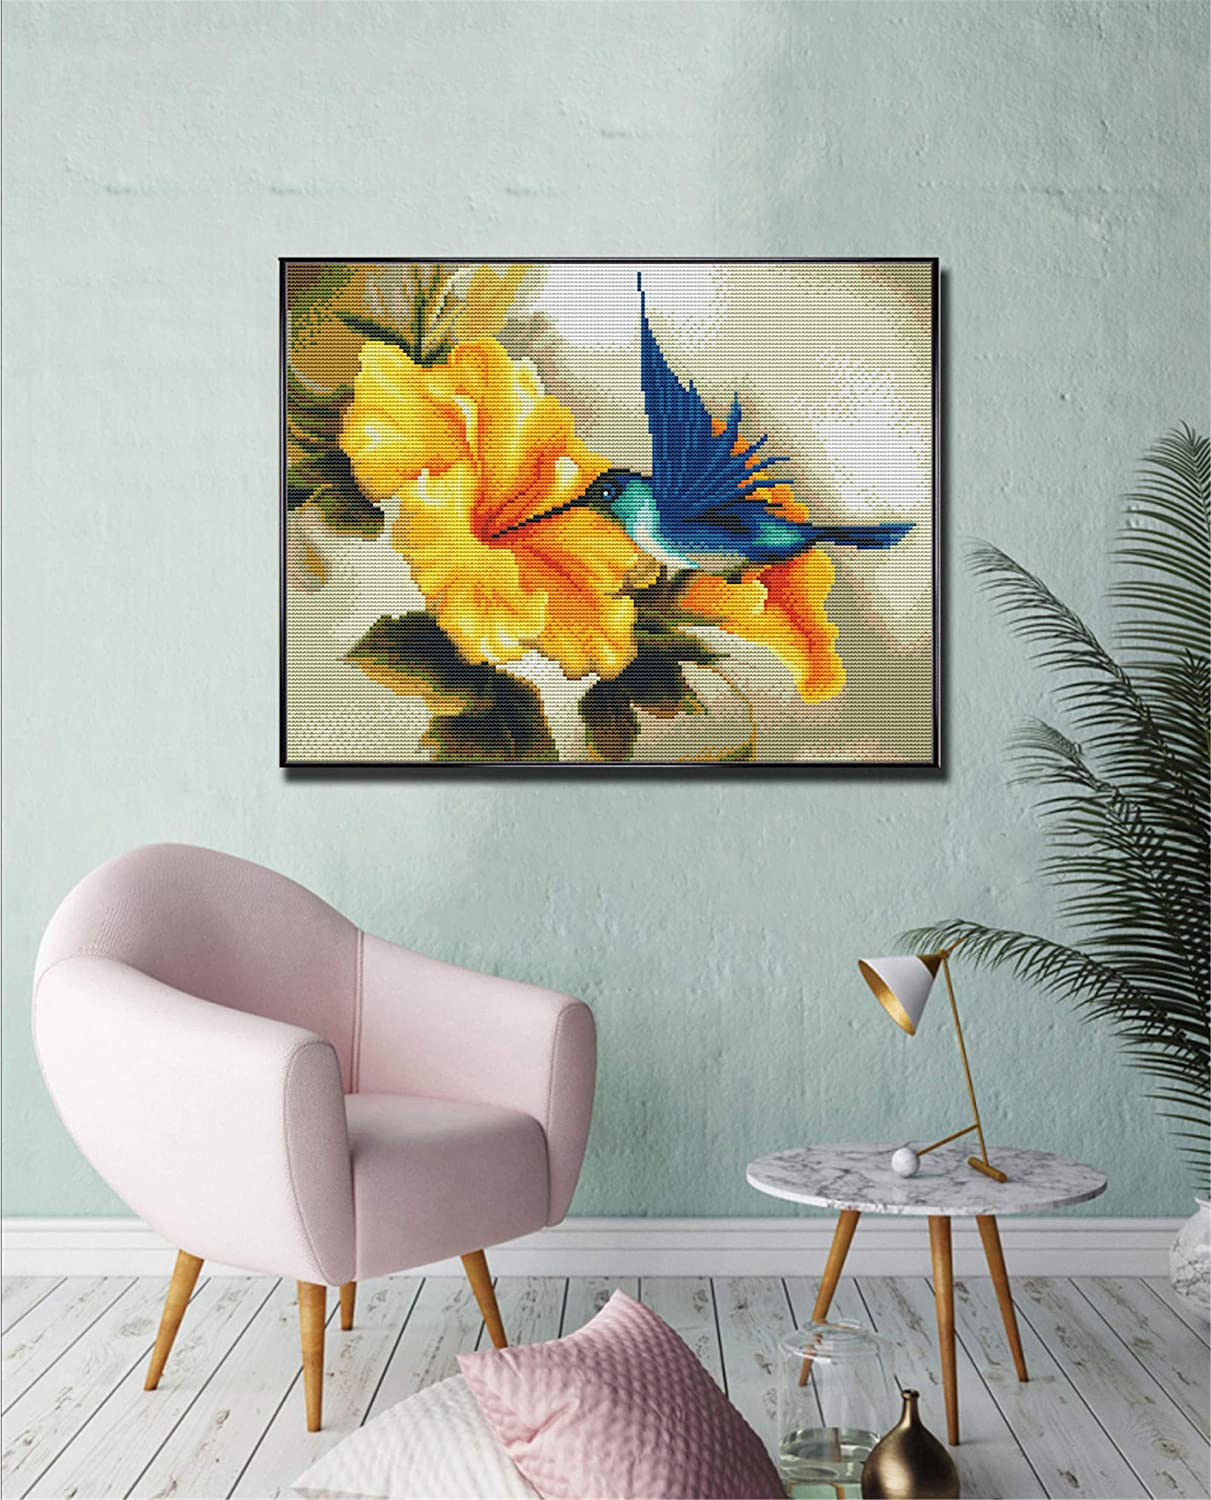 Cross Stitch Kits Counted Cross Stitch Kit Cross-Stitching Patterns Hummingbird Flowers with 11CT White Fabric DIY Art Crafts /& Sewing Needlepoints Kit for Home Decor 14.2/×18.1Inch